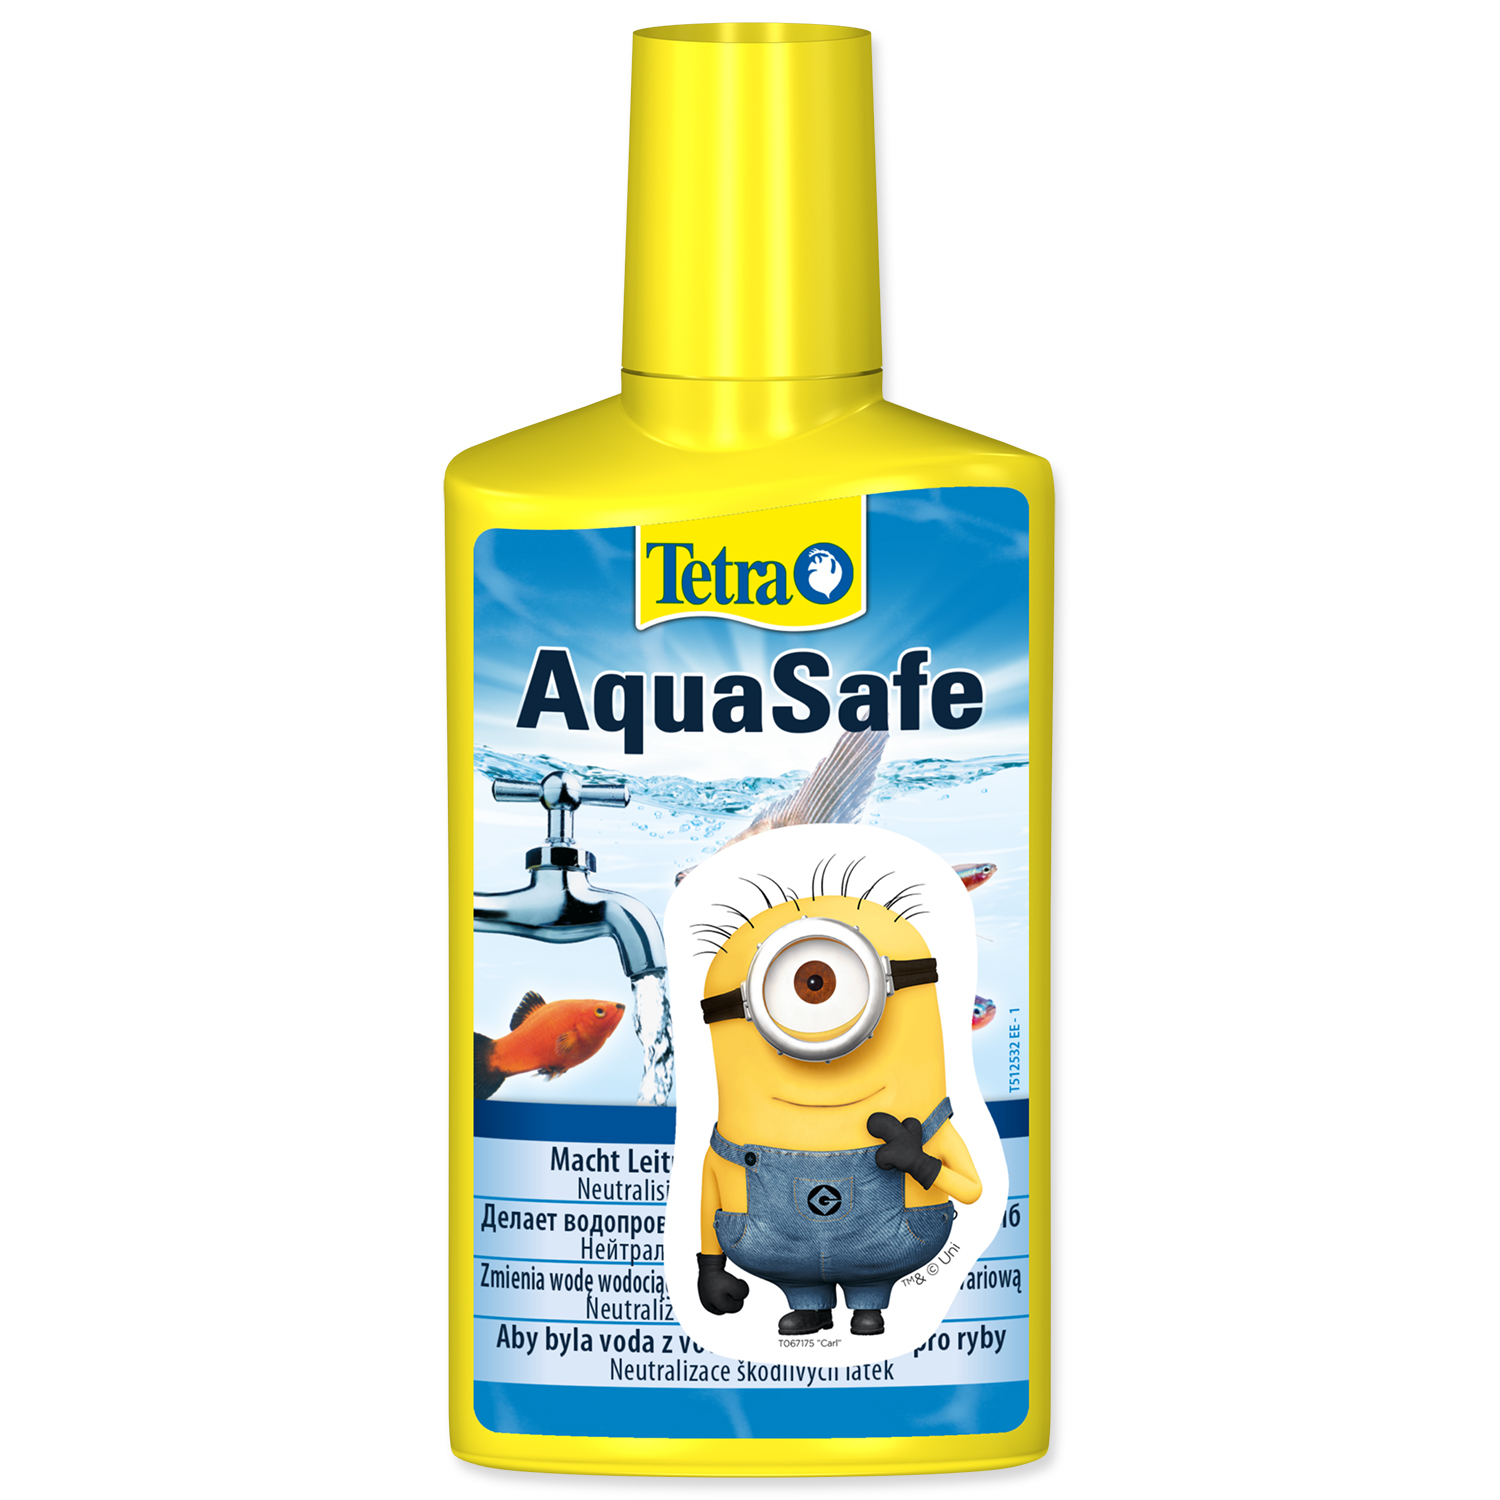 TETRA AquaSafe edice Mimoni 250ml